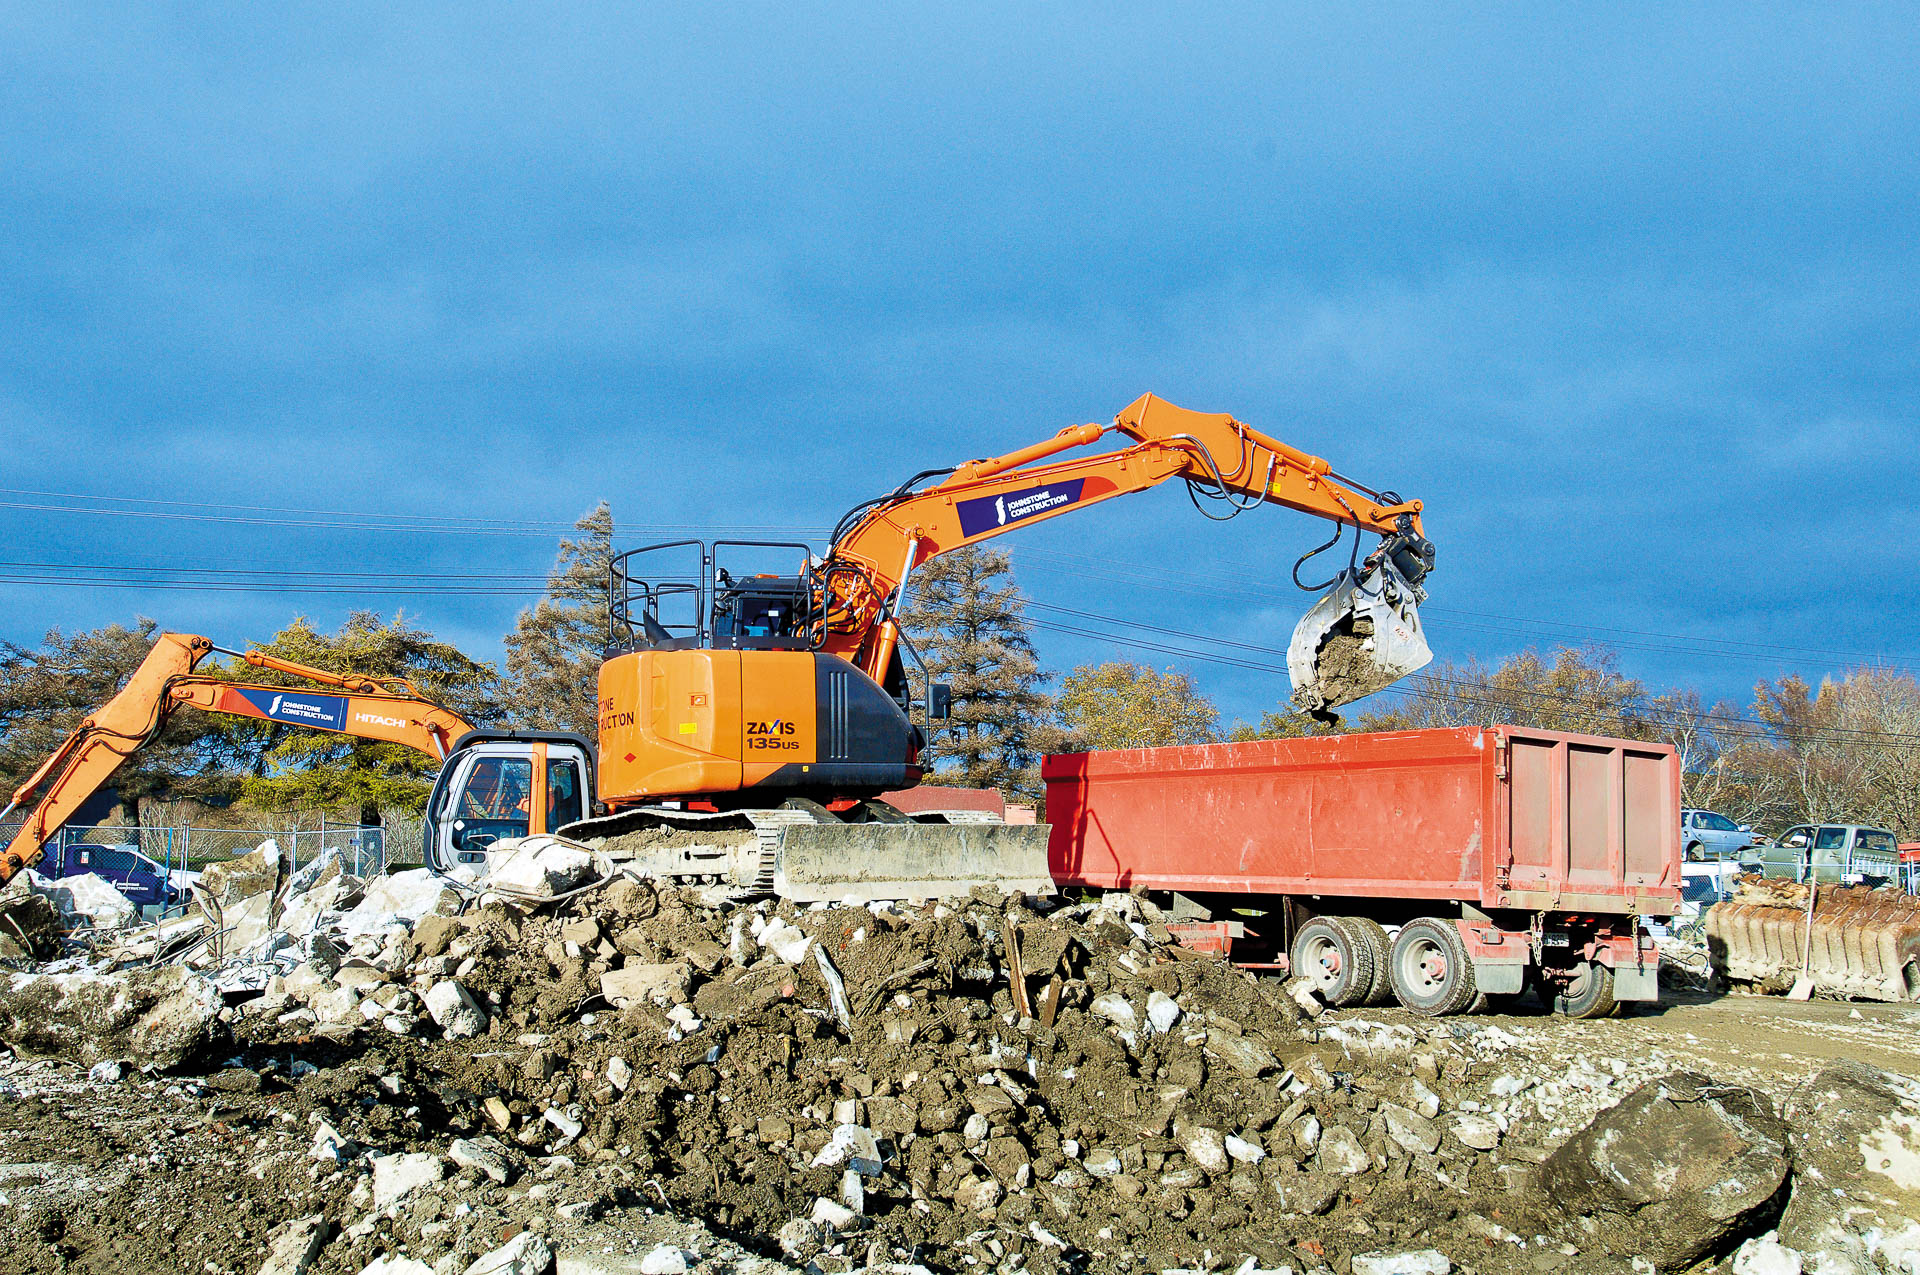 Attach2 Attachments on Hitachi Diggers loading trucks during Demolition